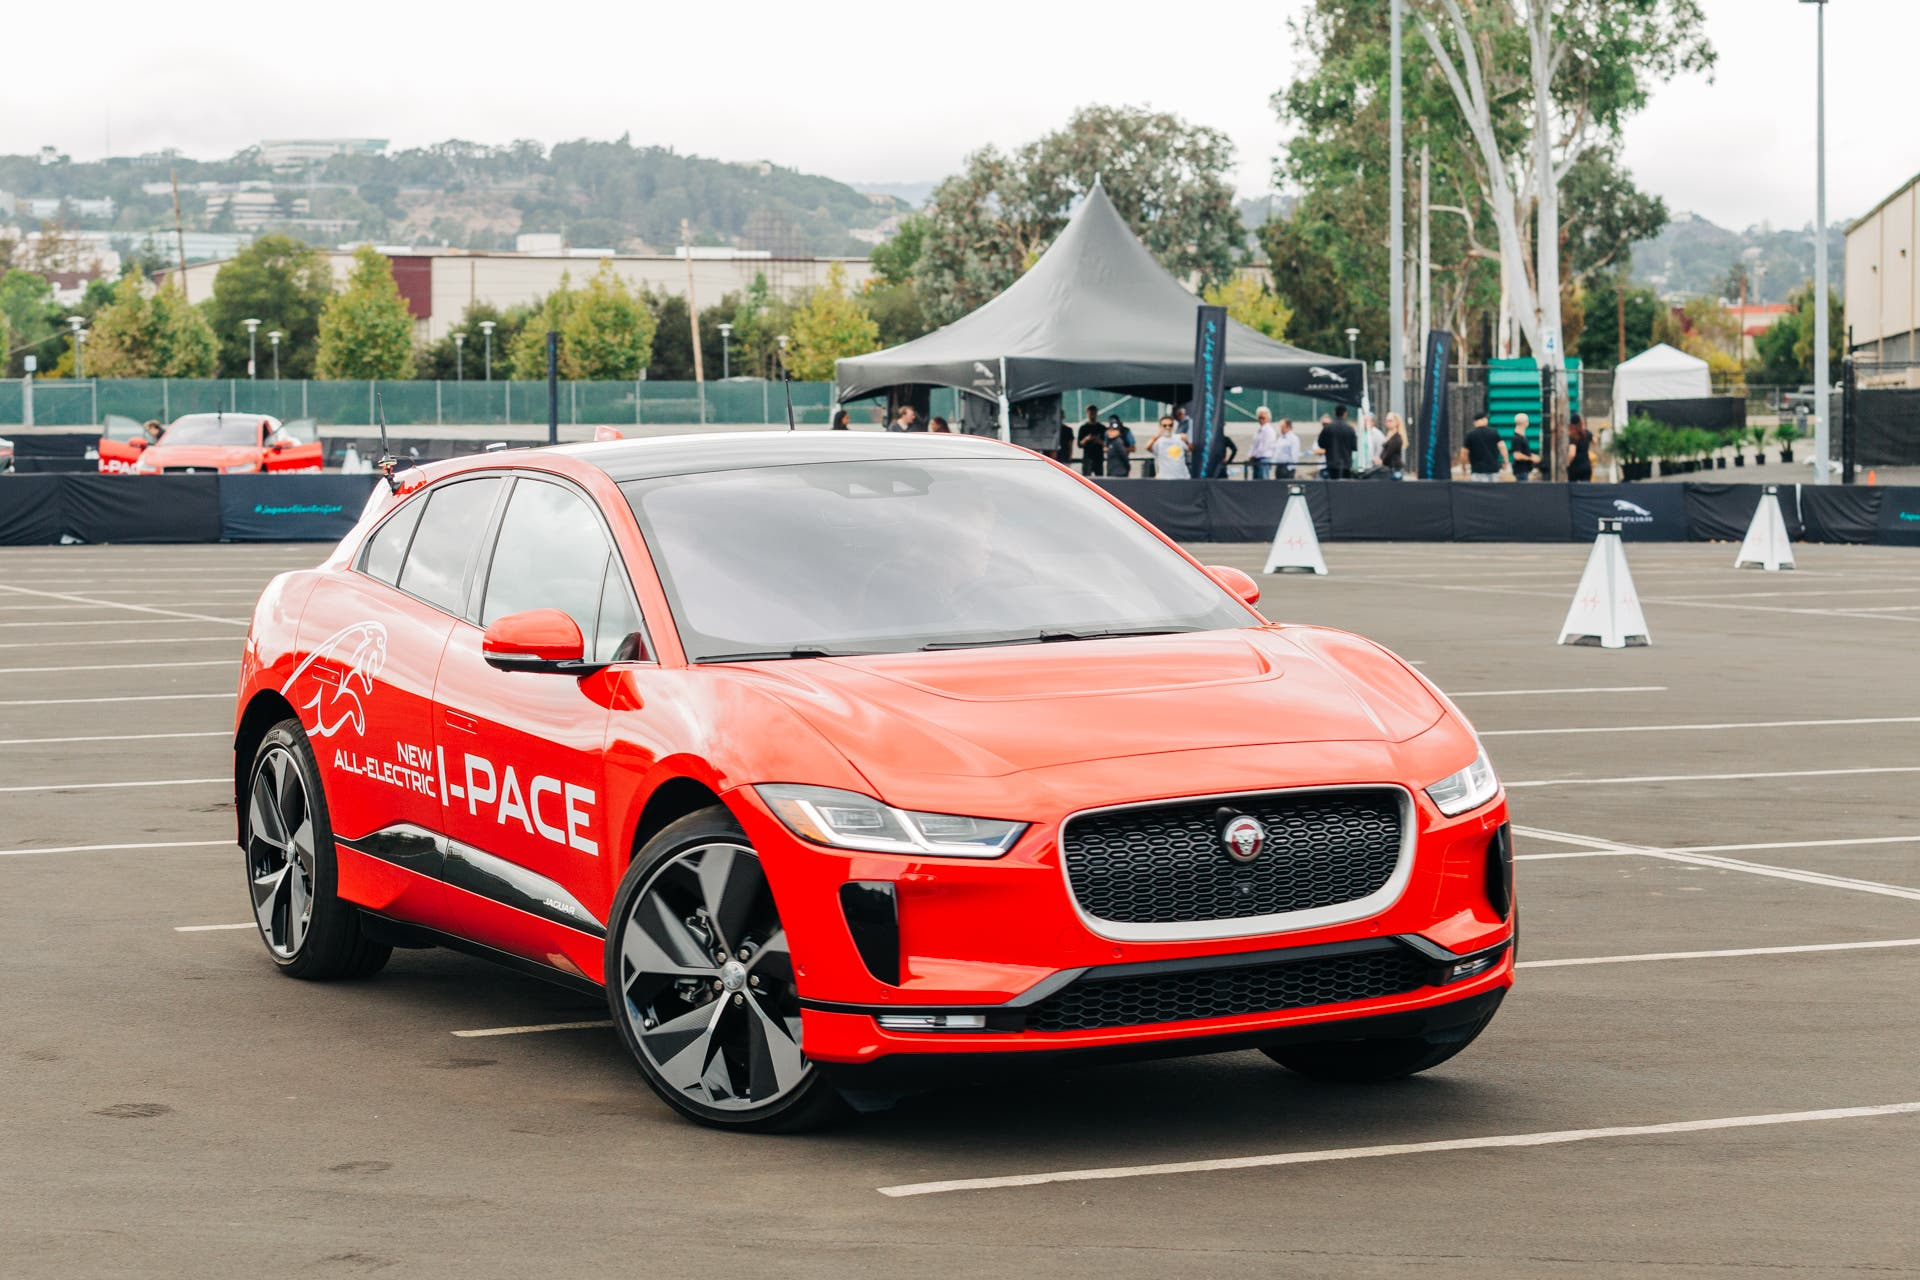 photo of Jaguar I-Pace Sales Have Crashed, Dealer Inventory Exceeds 6 Month Supply image